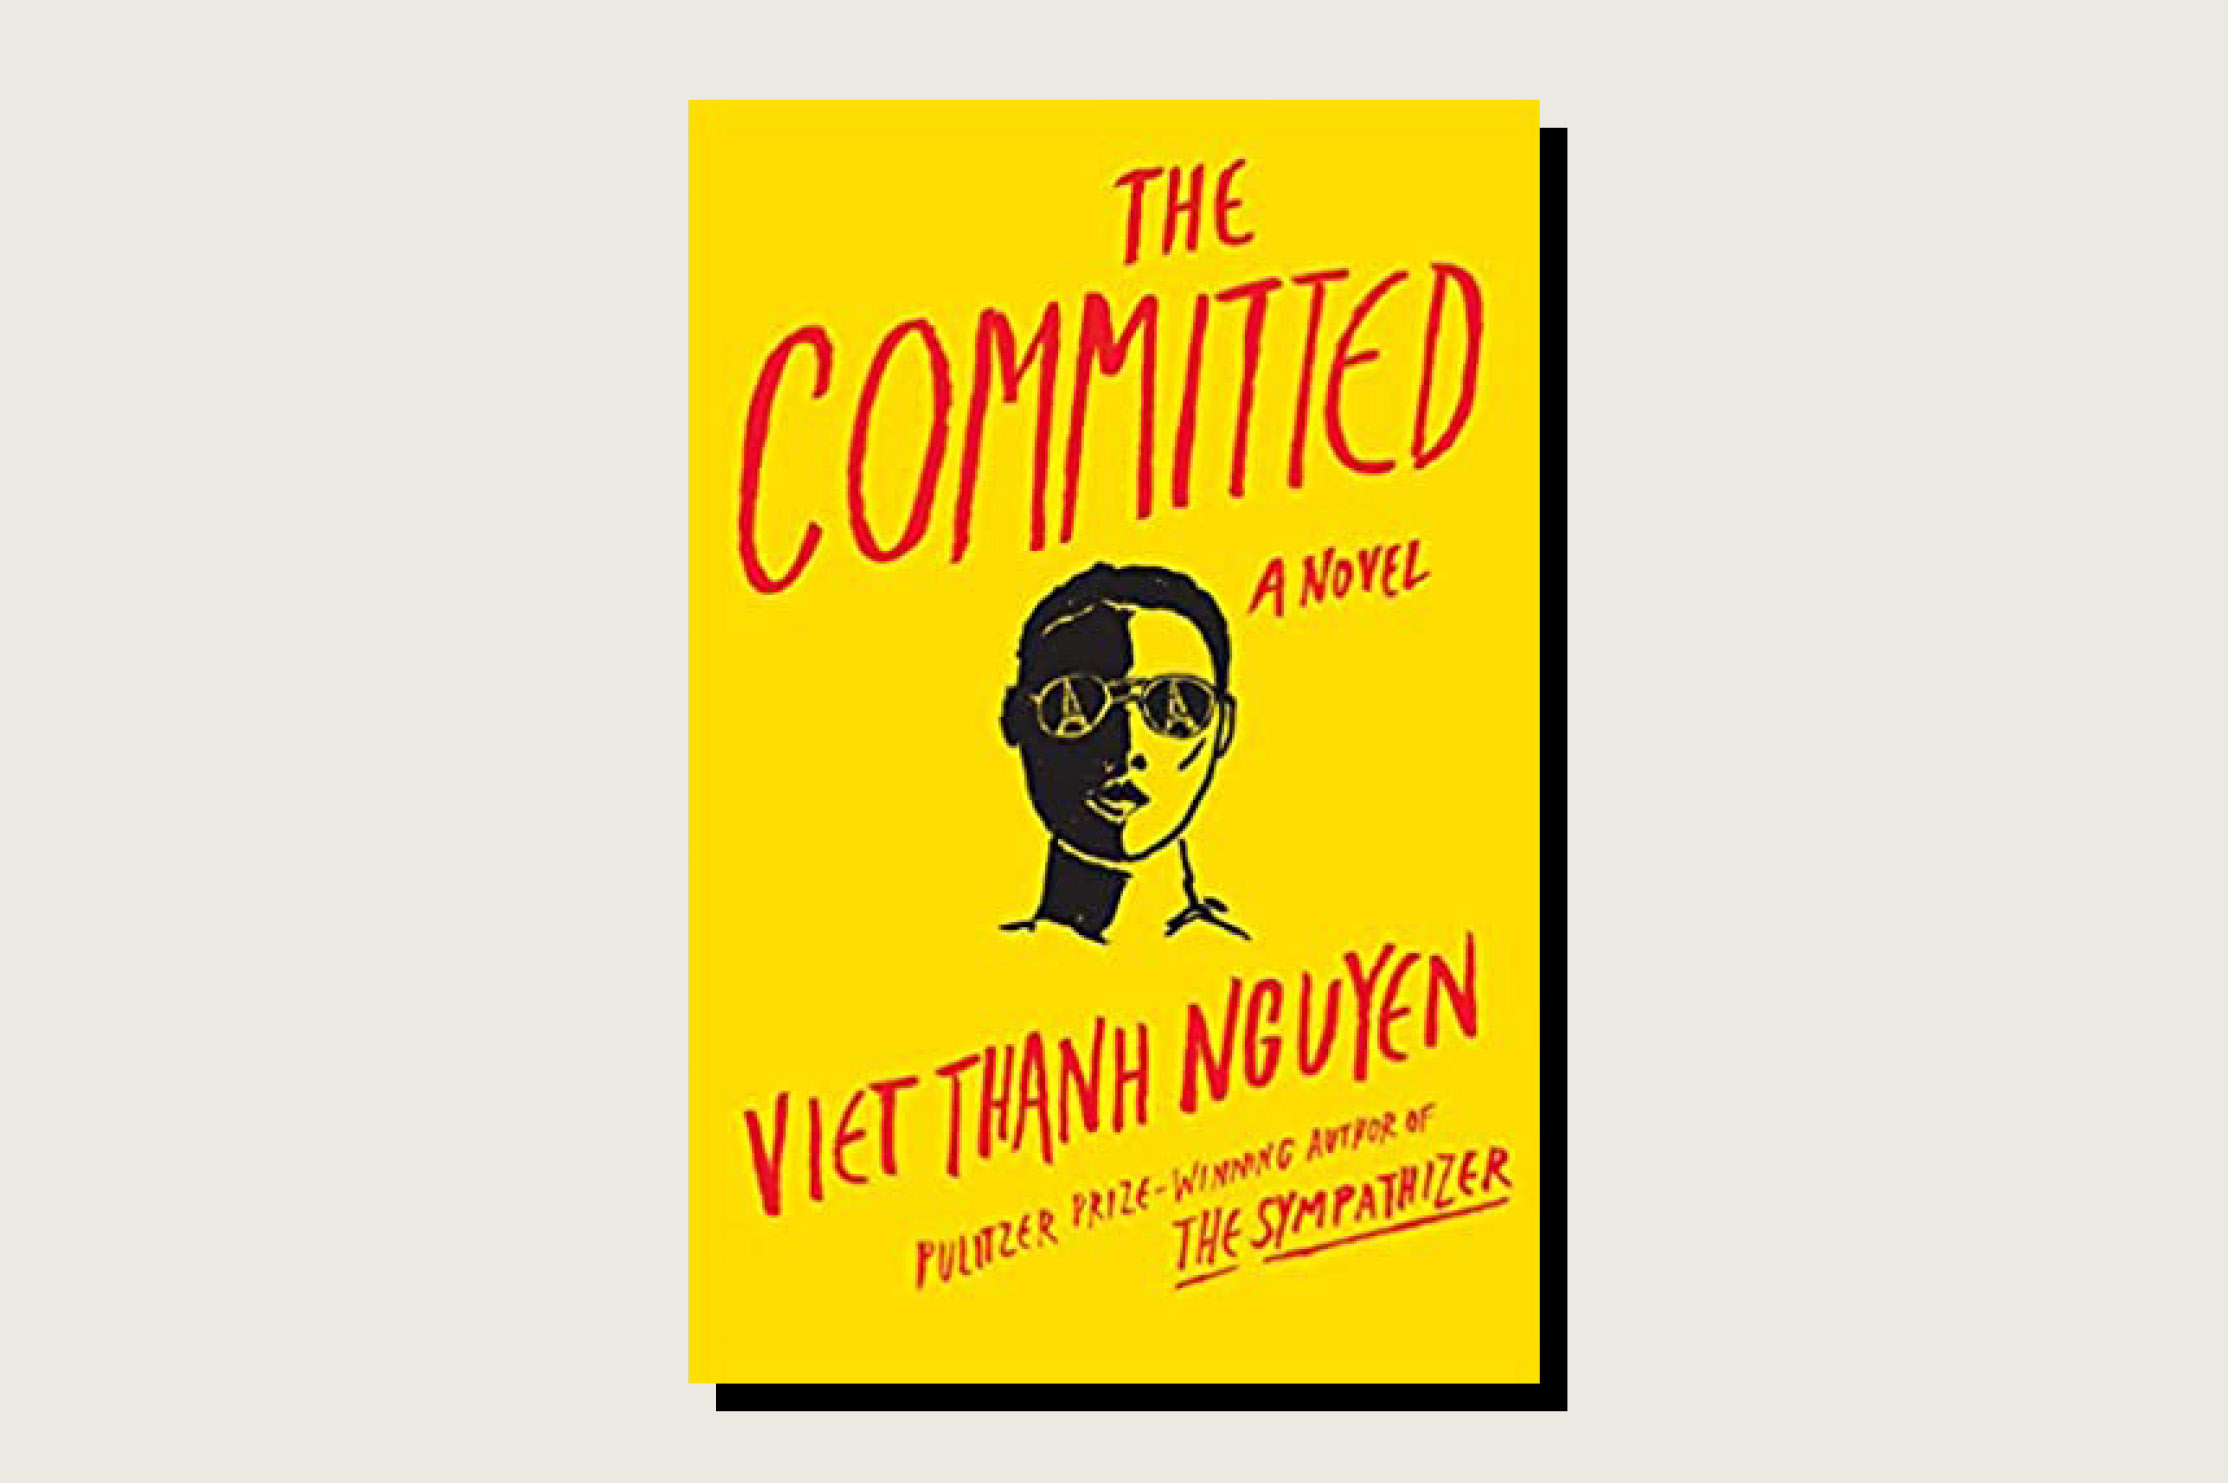 The Committed, Viet Thanh Nguyen, Grove Press, 368 pp., , March 2021